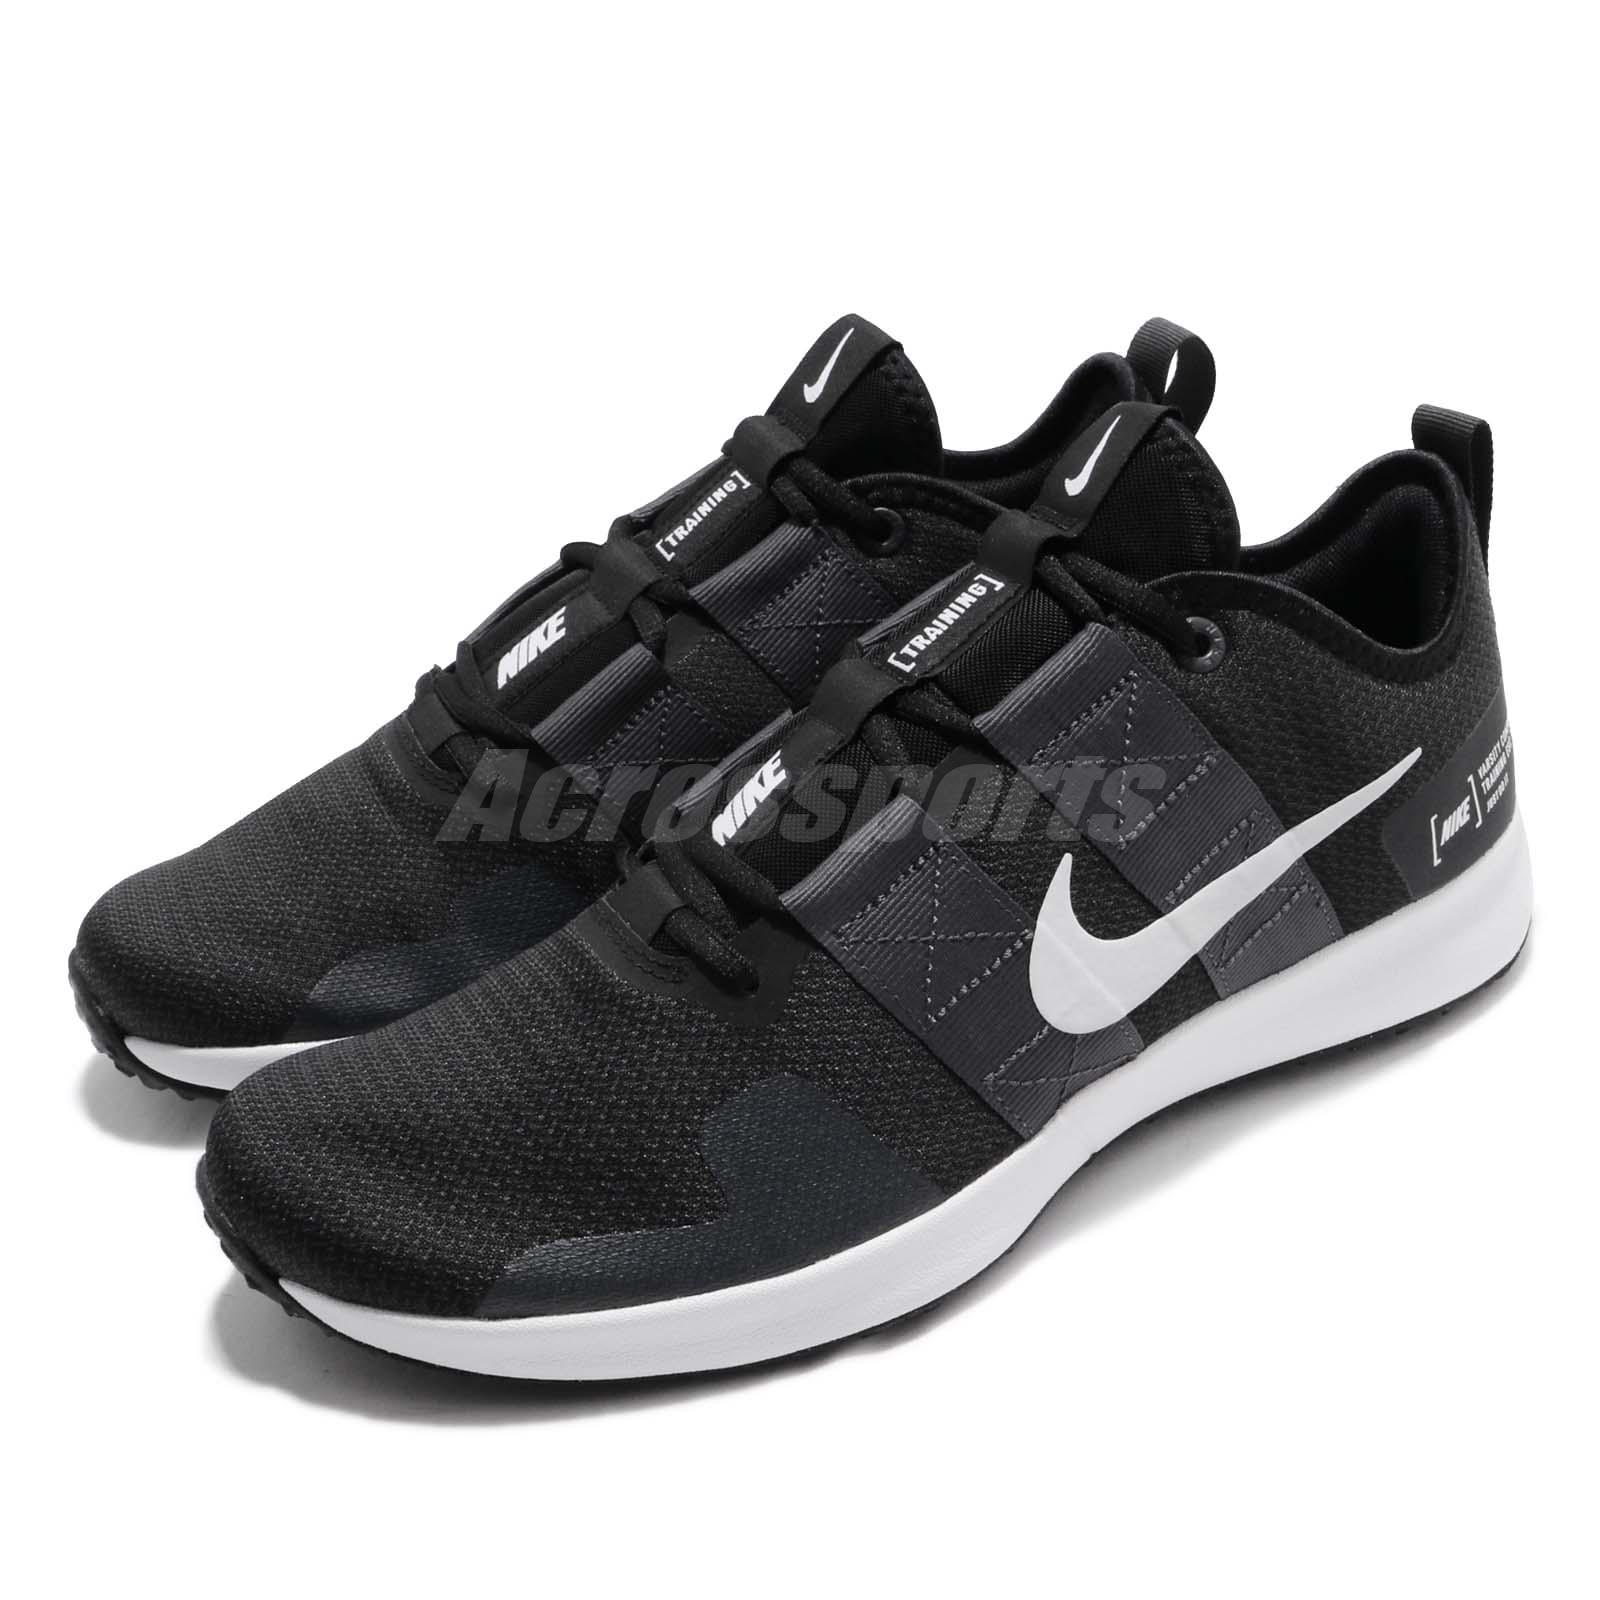 855799d5994ac Details about Nike Varsity Compete TR 2 Black White Men Cross Training Shoe  Sneaker AT1239-003